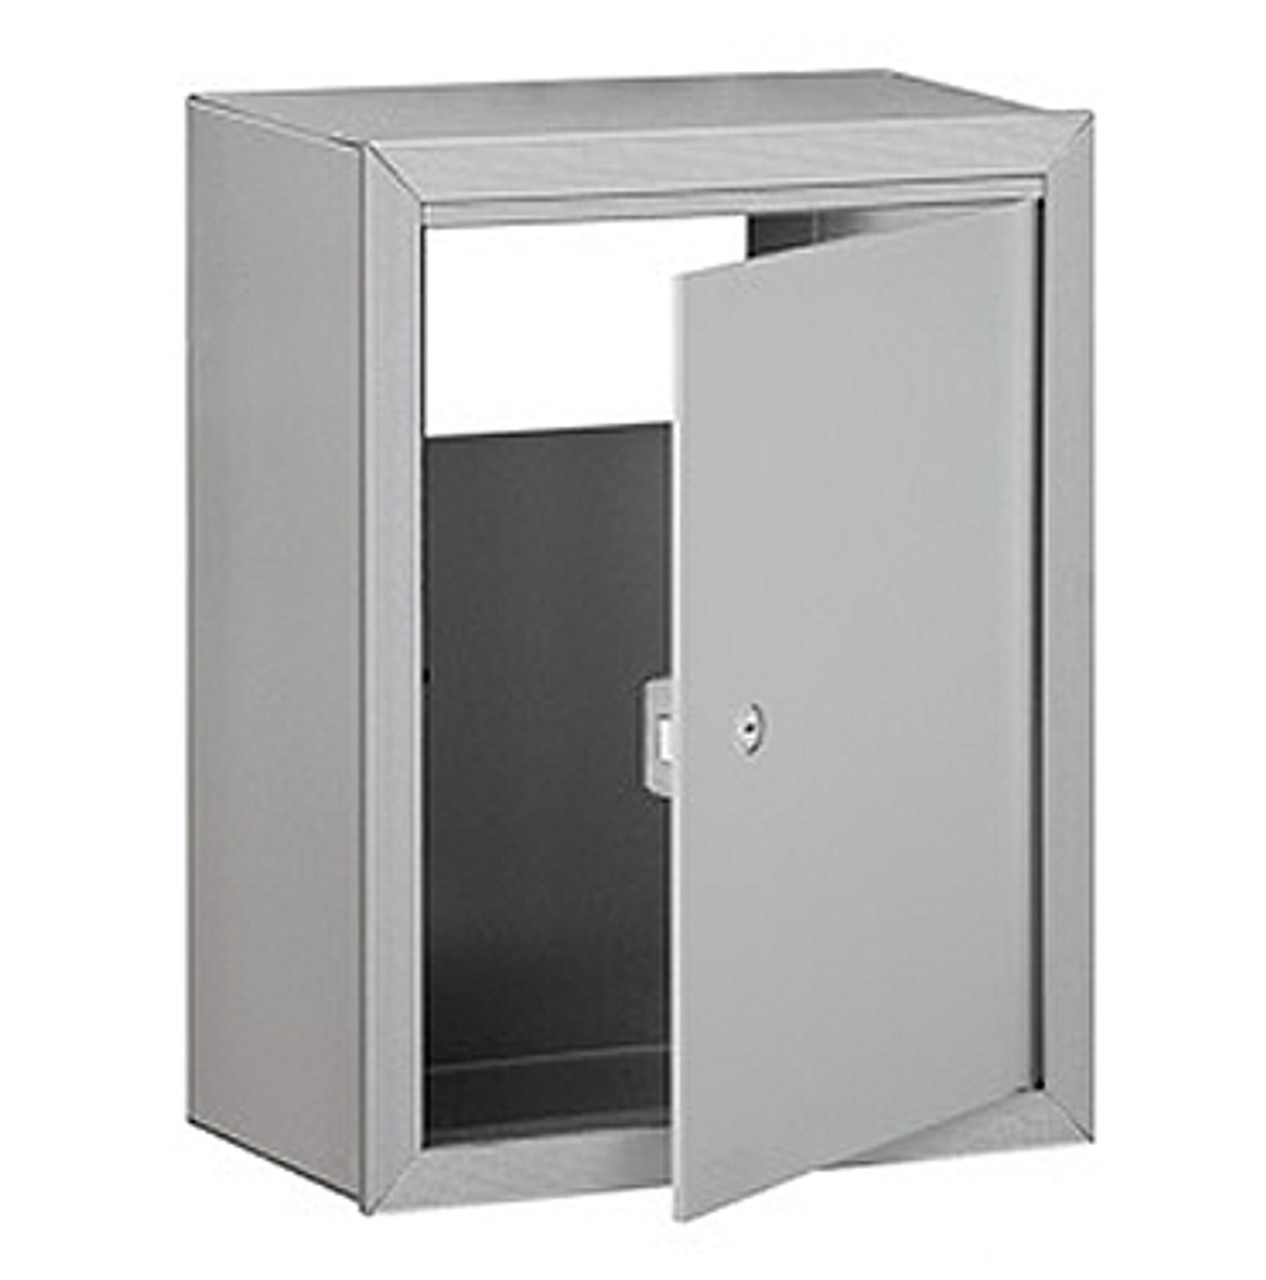 Optional Mail Slot Receptacle with door open